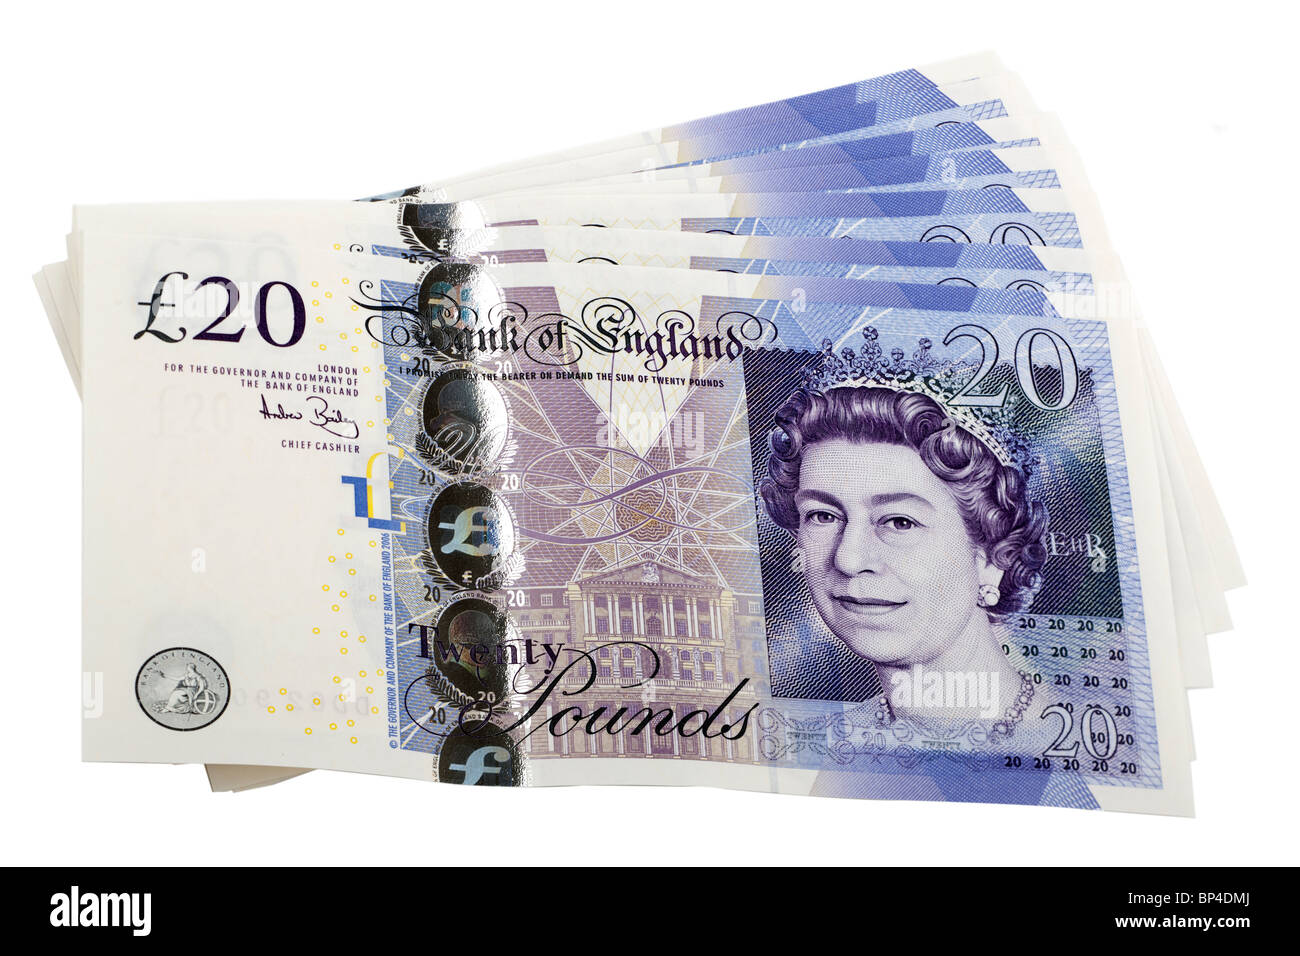 140 pounds in British currency 20 pound notes.  Editorial use only - Stock Image